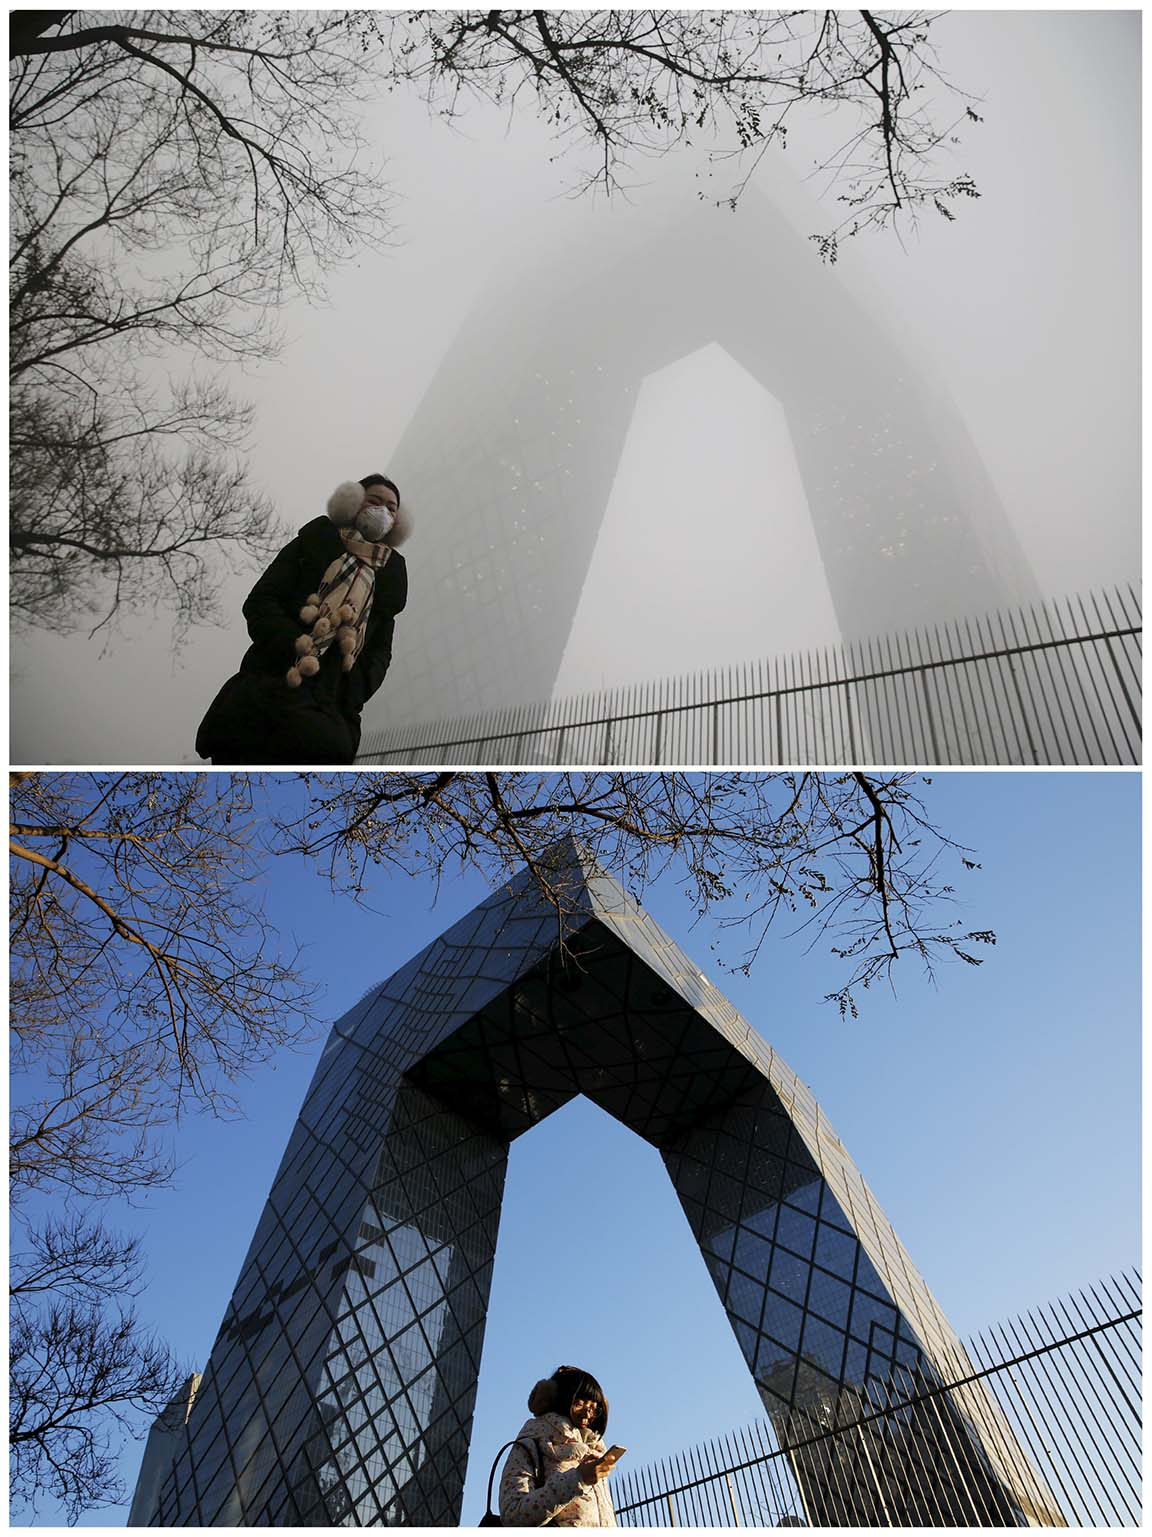 A combo shows a morning commuter walking in front of the China Central Television (CCTV) building on a smoggy day and a sunny day